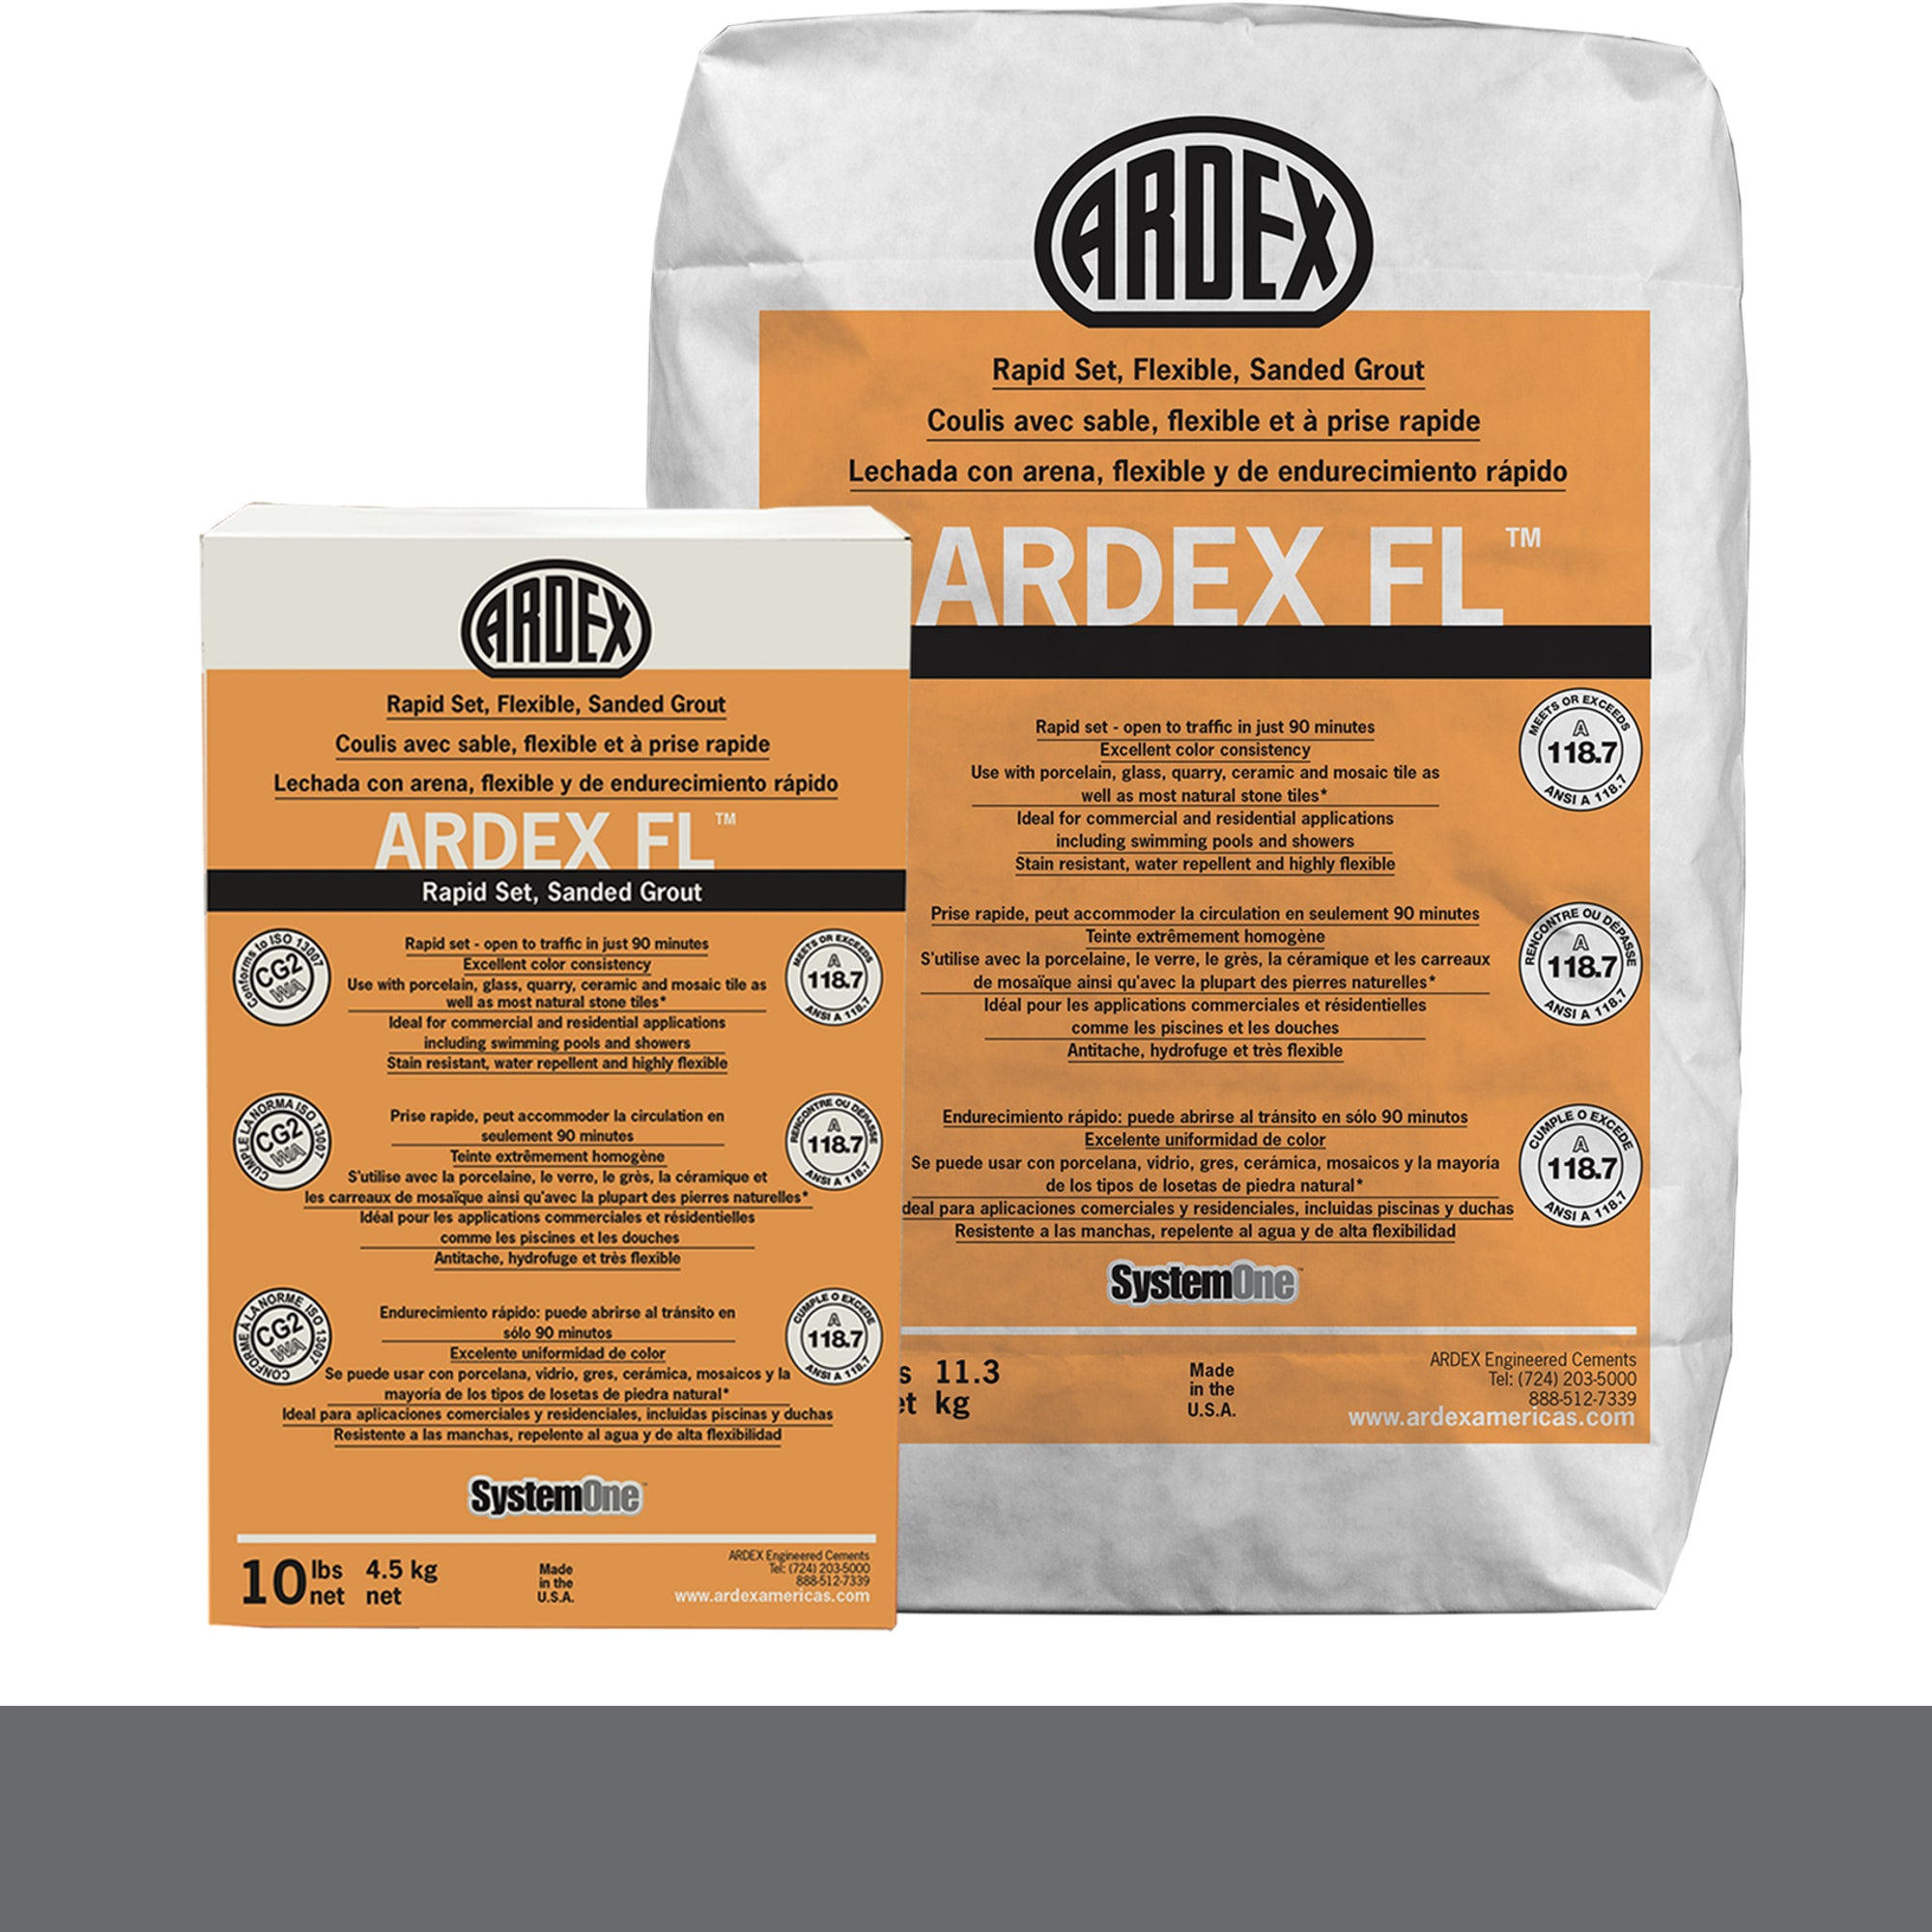 Ardex Fl Grout 21-Slate Gray 10-Lb Bag Grout Sanded product photo